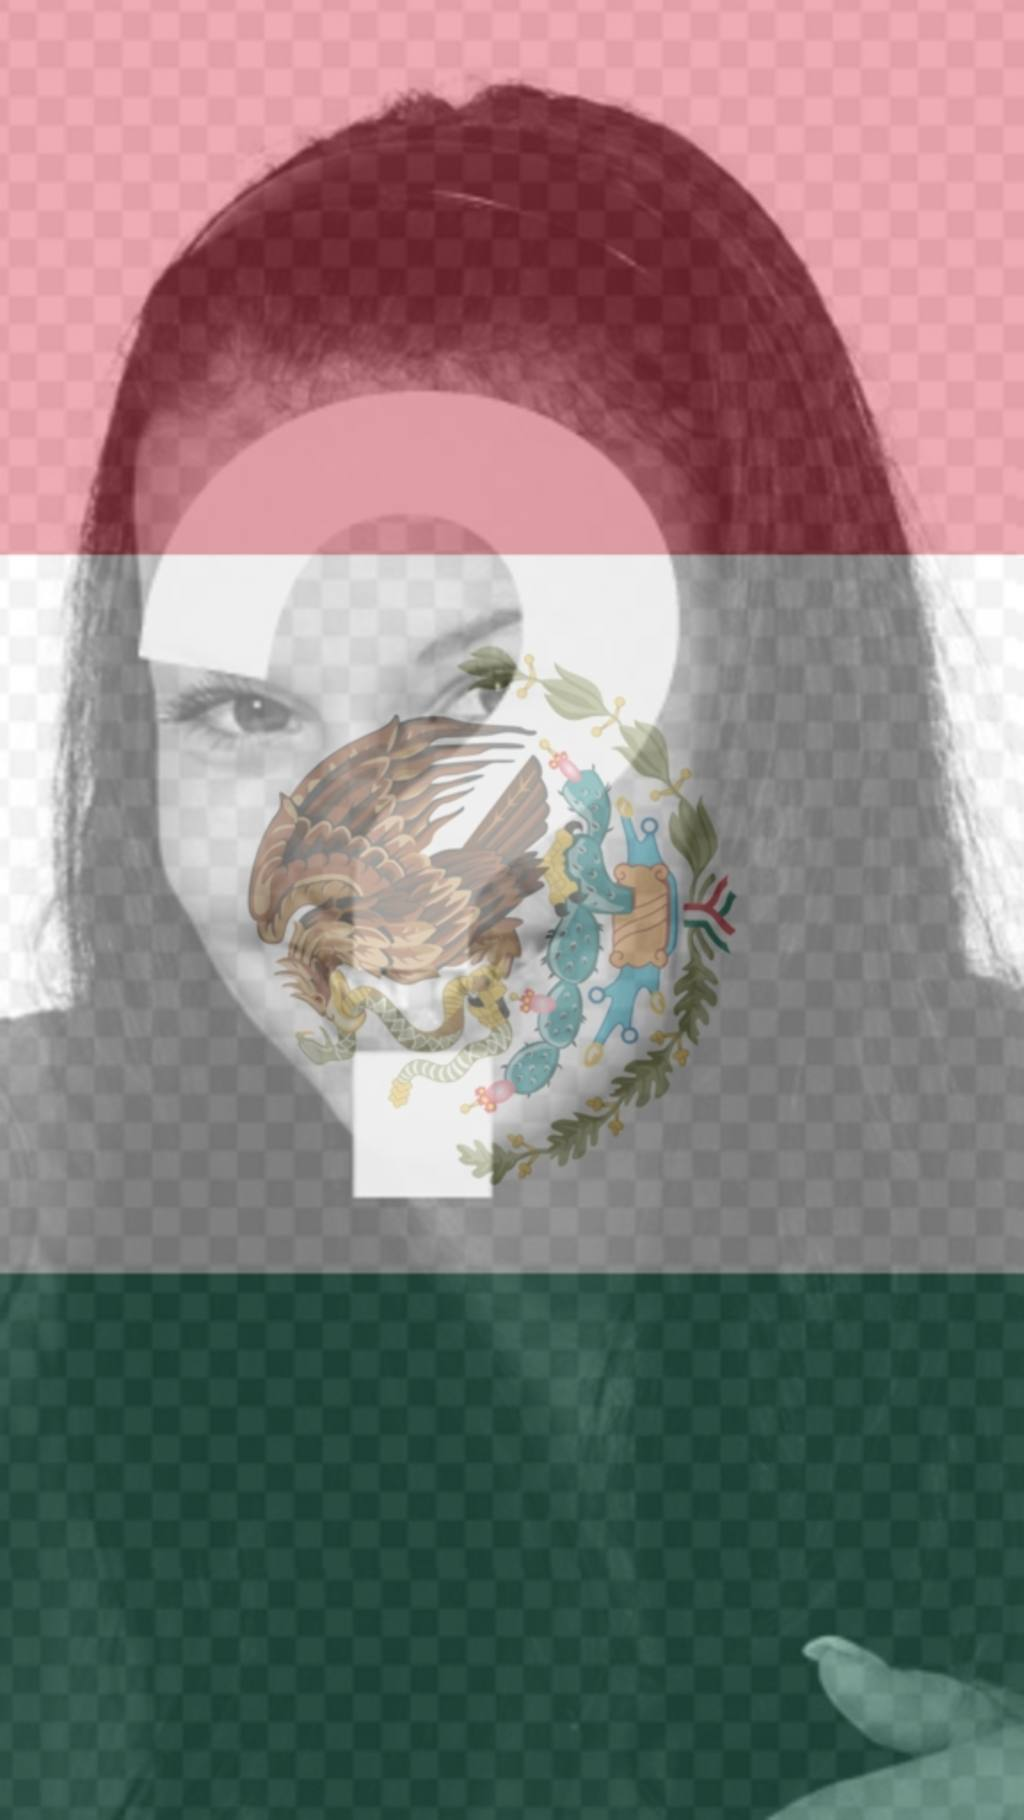 Background for your mobile phone with the flag of Mexico as a filter with your photo